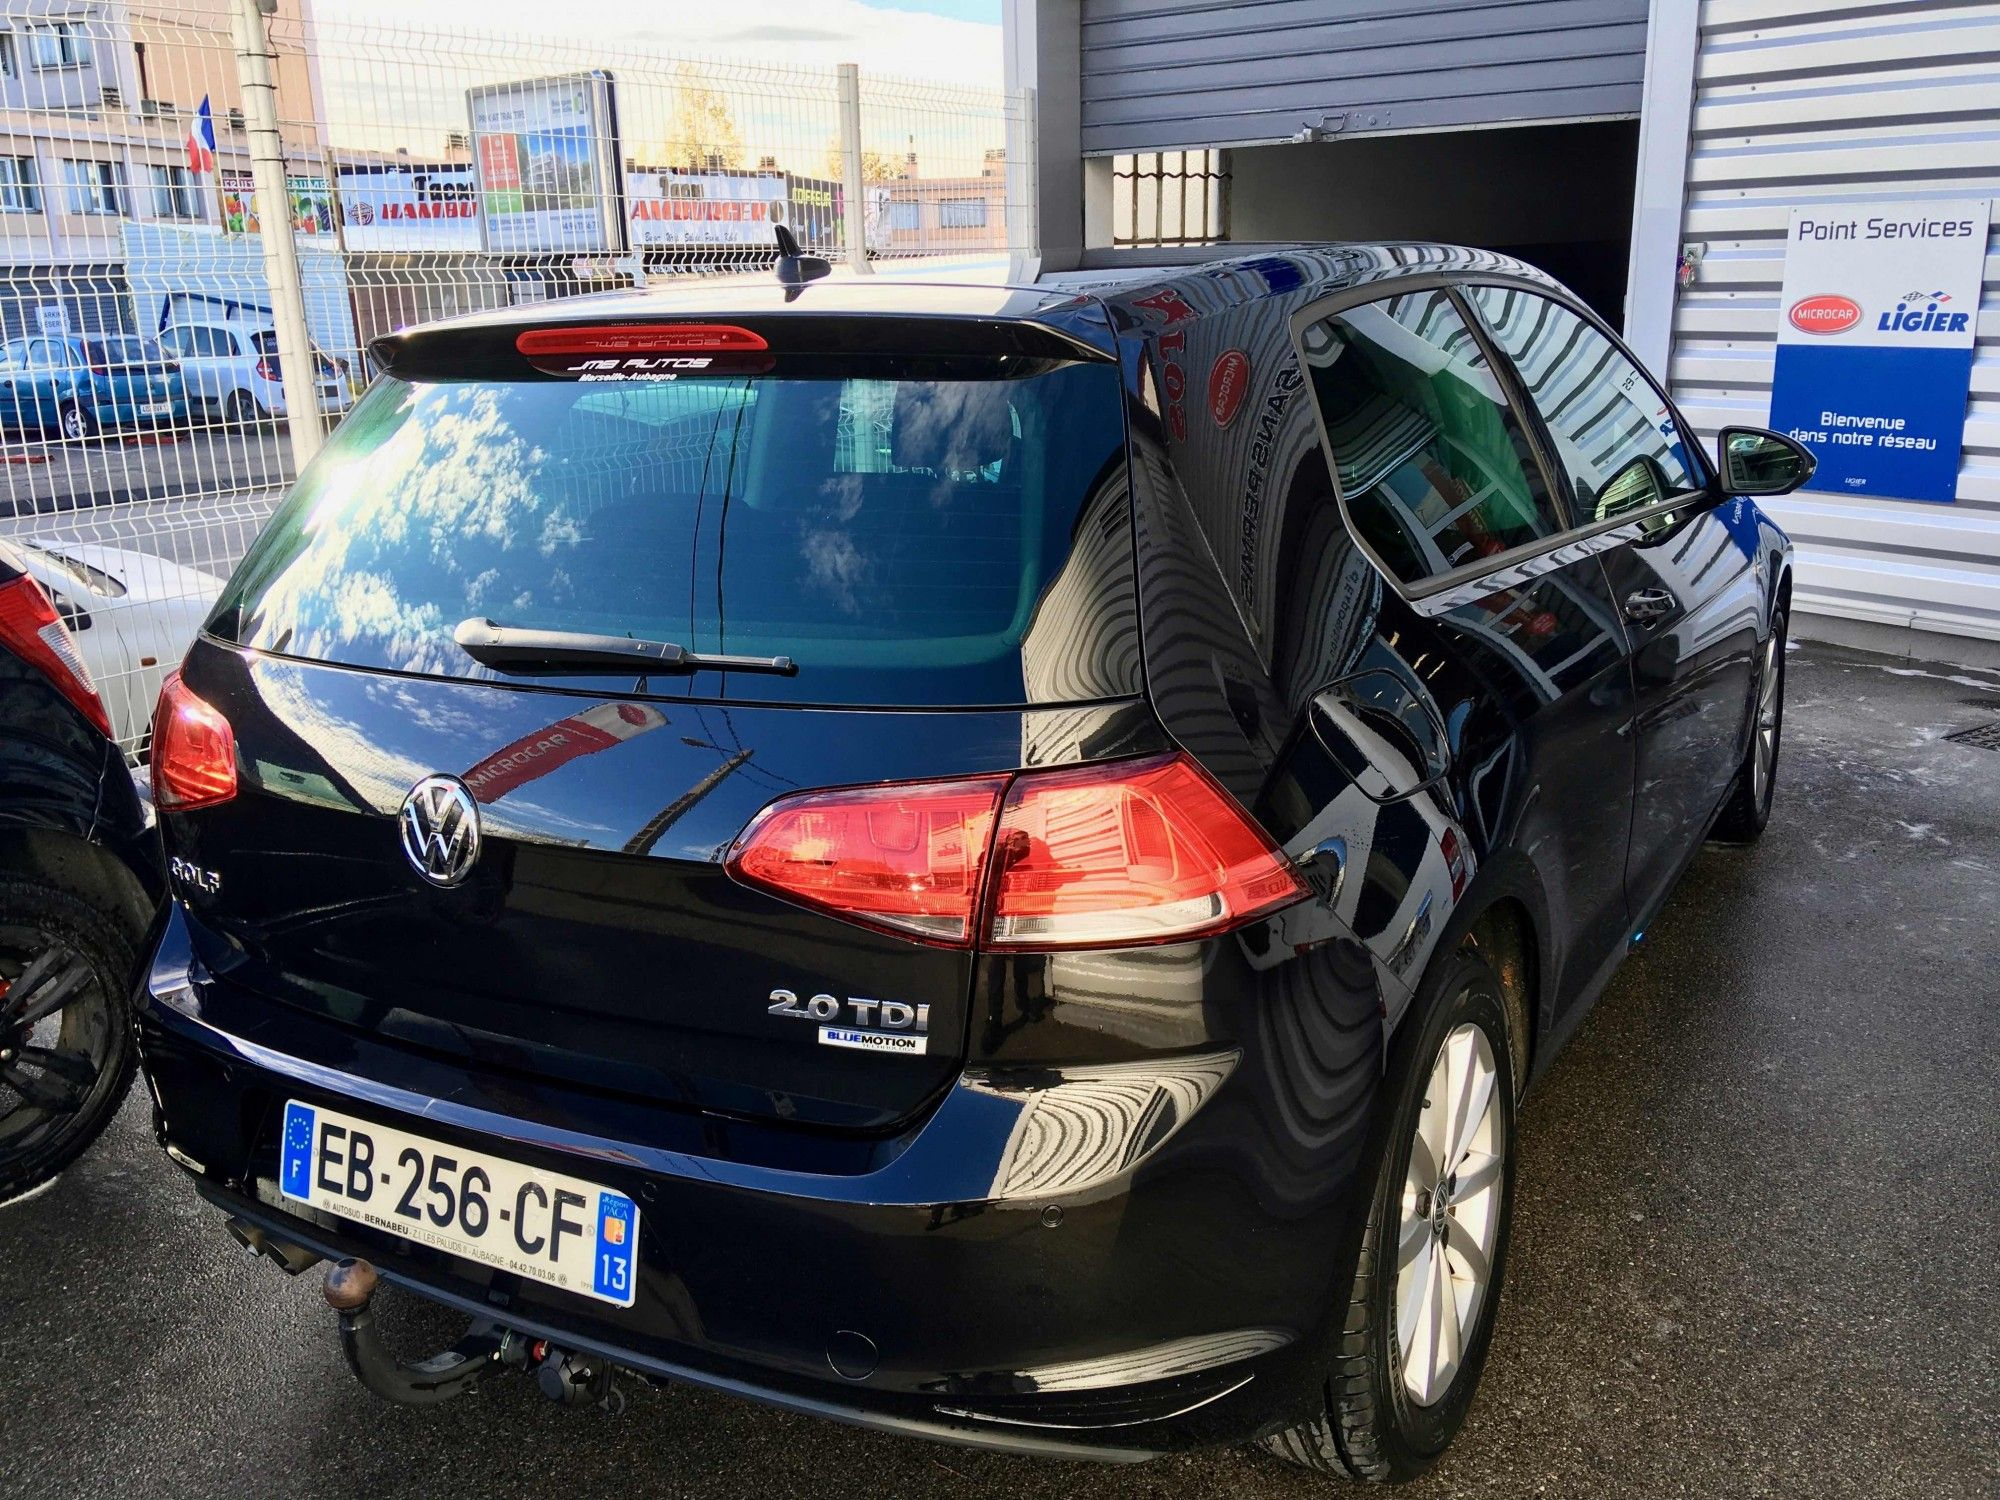 golf vii 150 cv tdi 3 portes boite auto 65000 kms vente neuf et occasion voiture sans permis. Black Bedroom Furniture Sets. Home Design Ideas